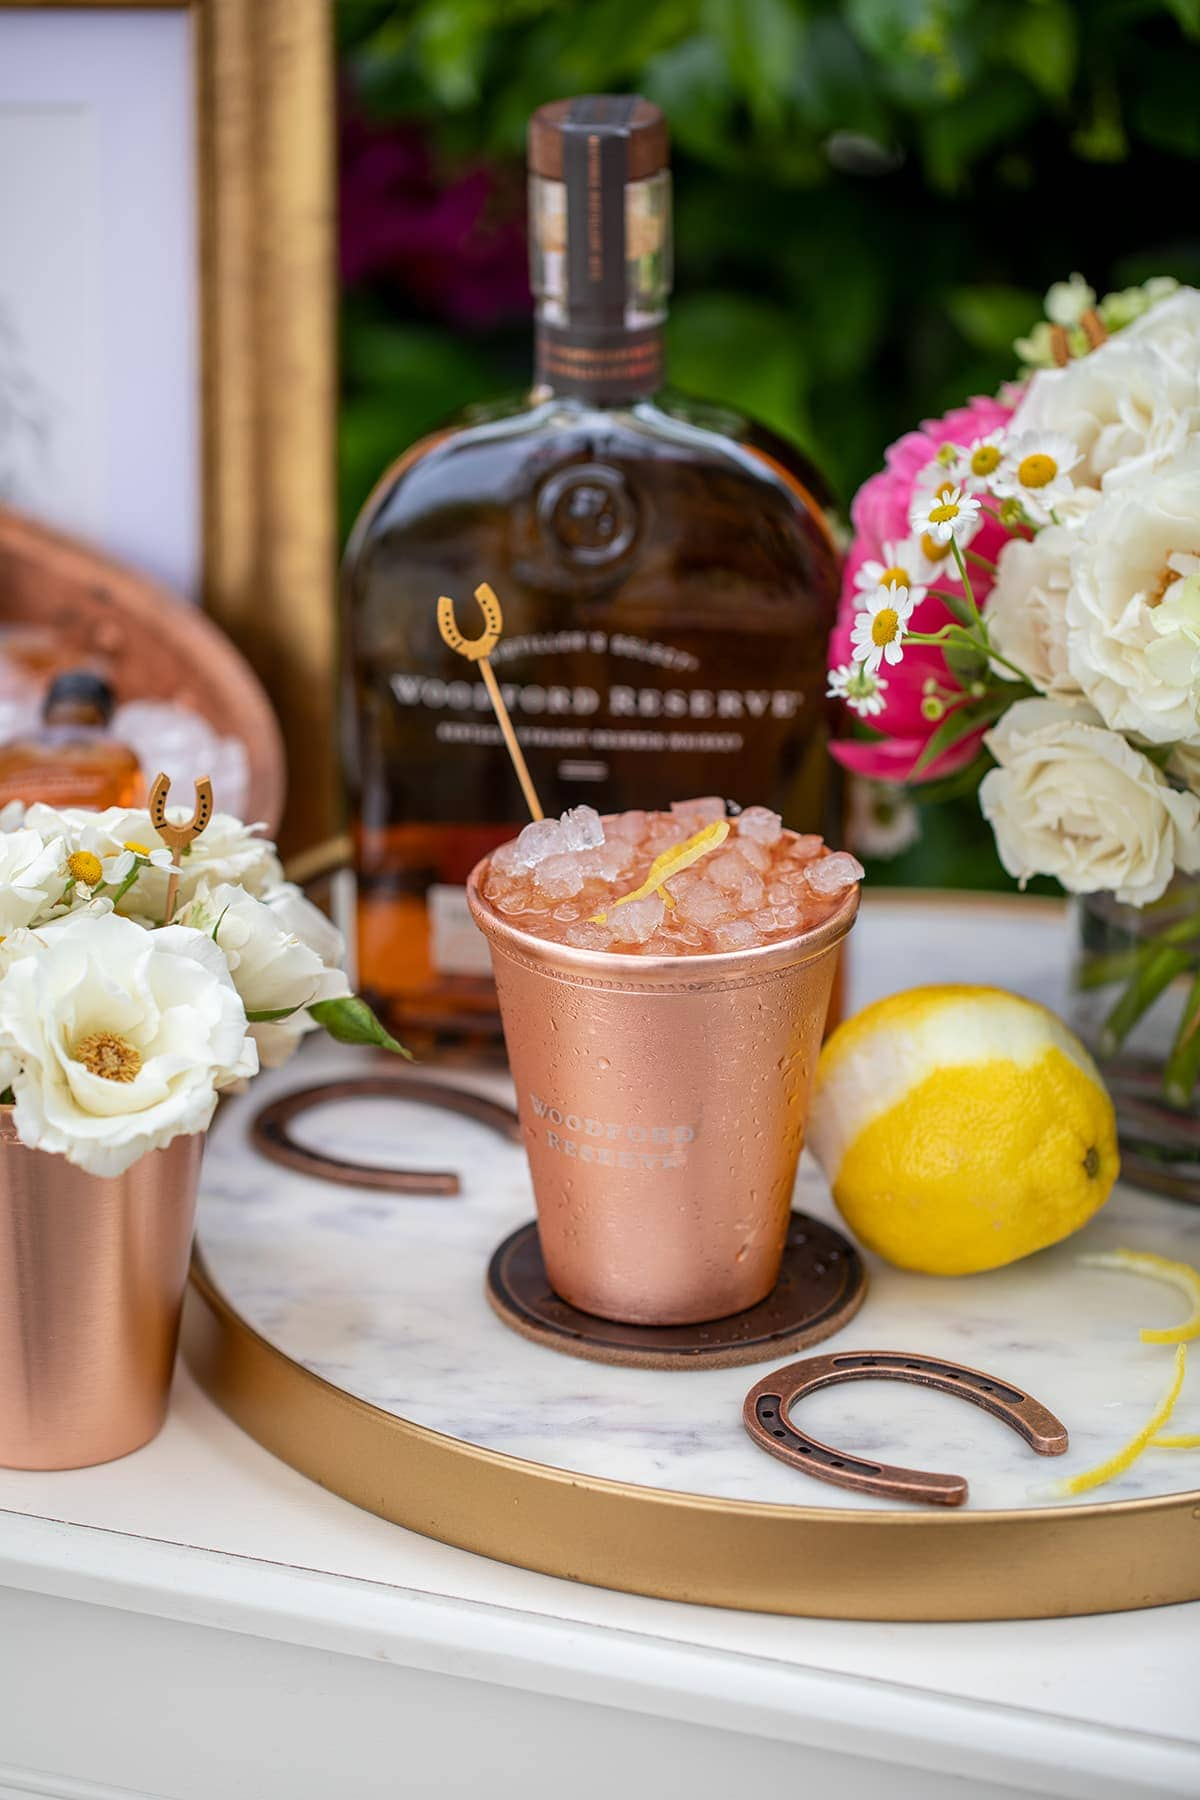 The Woodford Reserve Spire is a classic Derby Cocktail you can make at home to celebrate the Kentucky Derby.